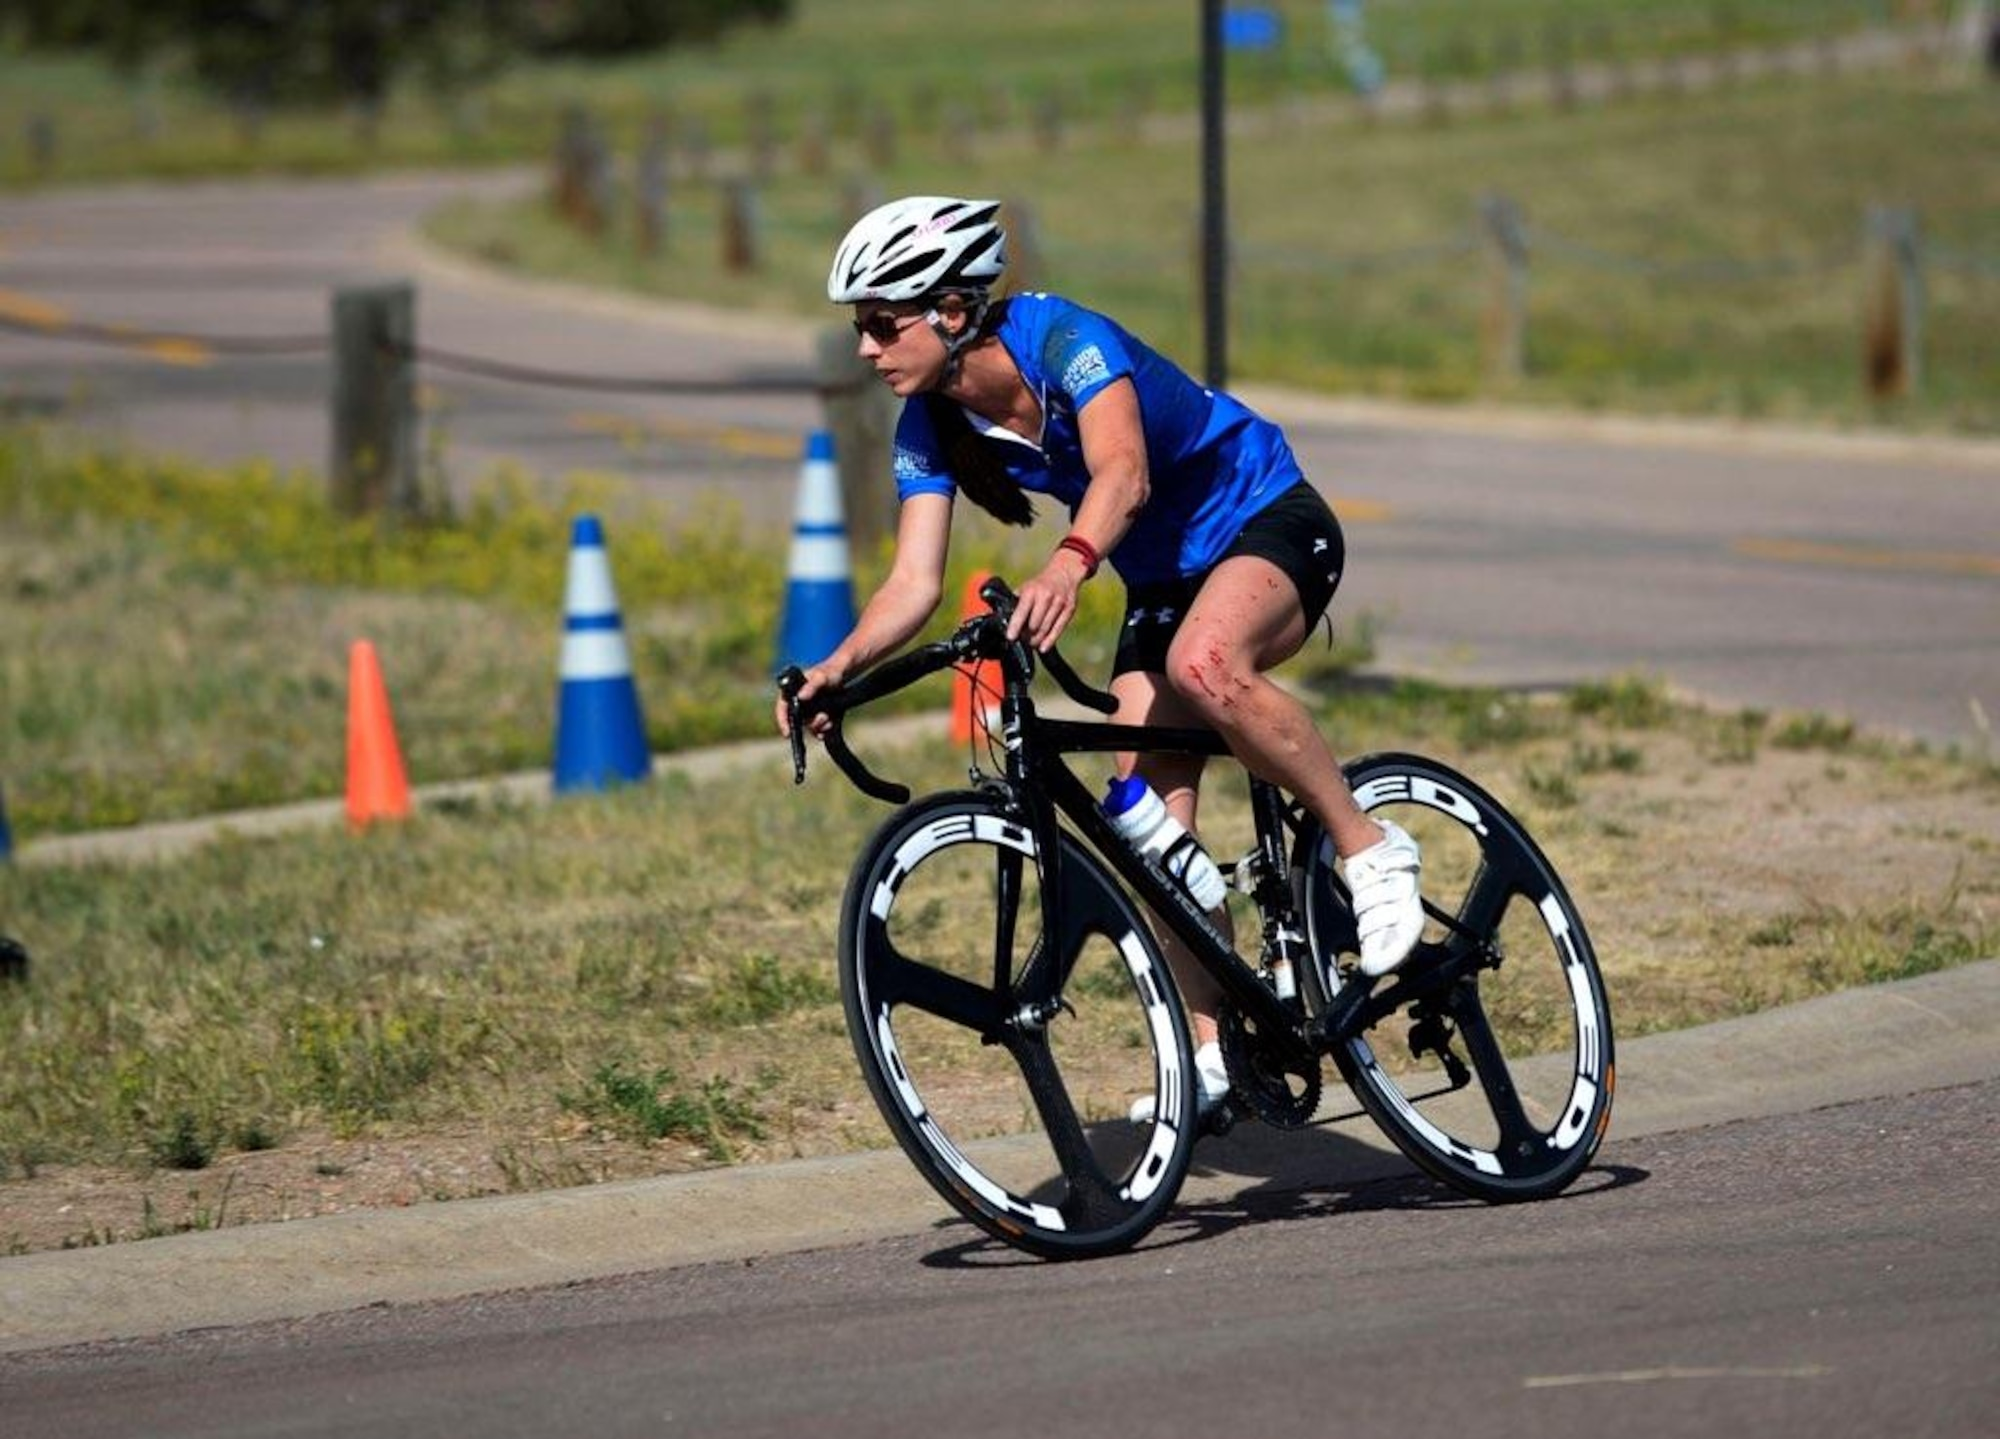 Master Sgt. Linn Dillard competes in the cycling event held at the DoD Warrior Games, held June 1-9 at the U.S. Air Force Academy, Colorado Springs, Colorado. Amongst the 11 sports within the competition, Dillard, whom is a cancer survivor and overcame a traumatic brain injury, competed in track, swimming, and cycling. (U.S. Air Force Courtesy Photo)